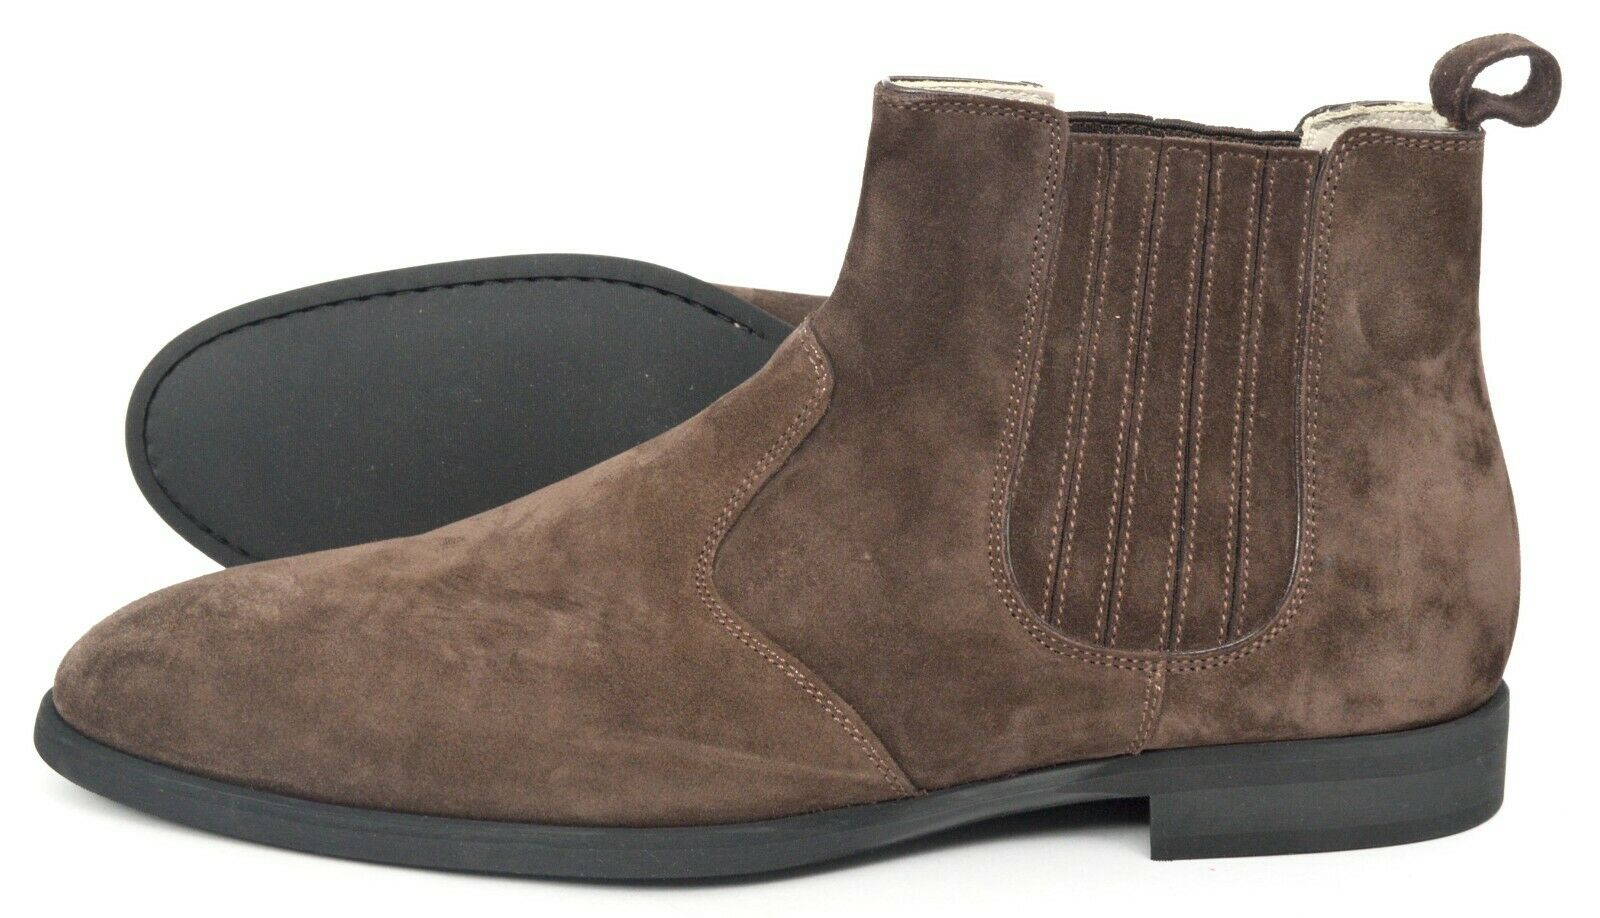 New KITON Mick Brown Suede Calfskin Leather Boots Shoes 9.5 (EU 42.5)